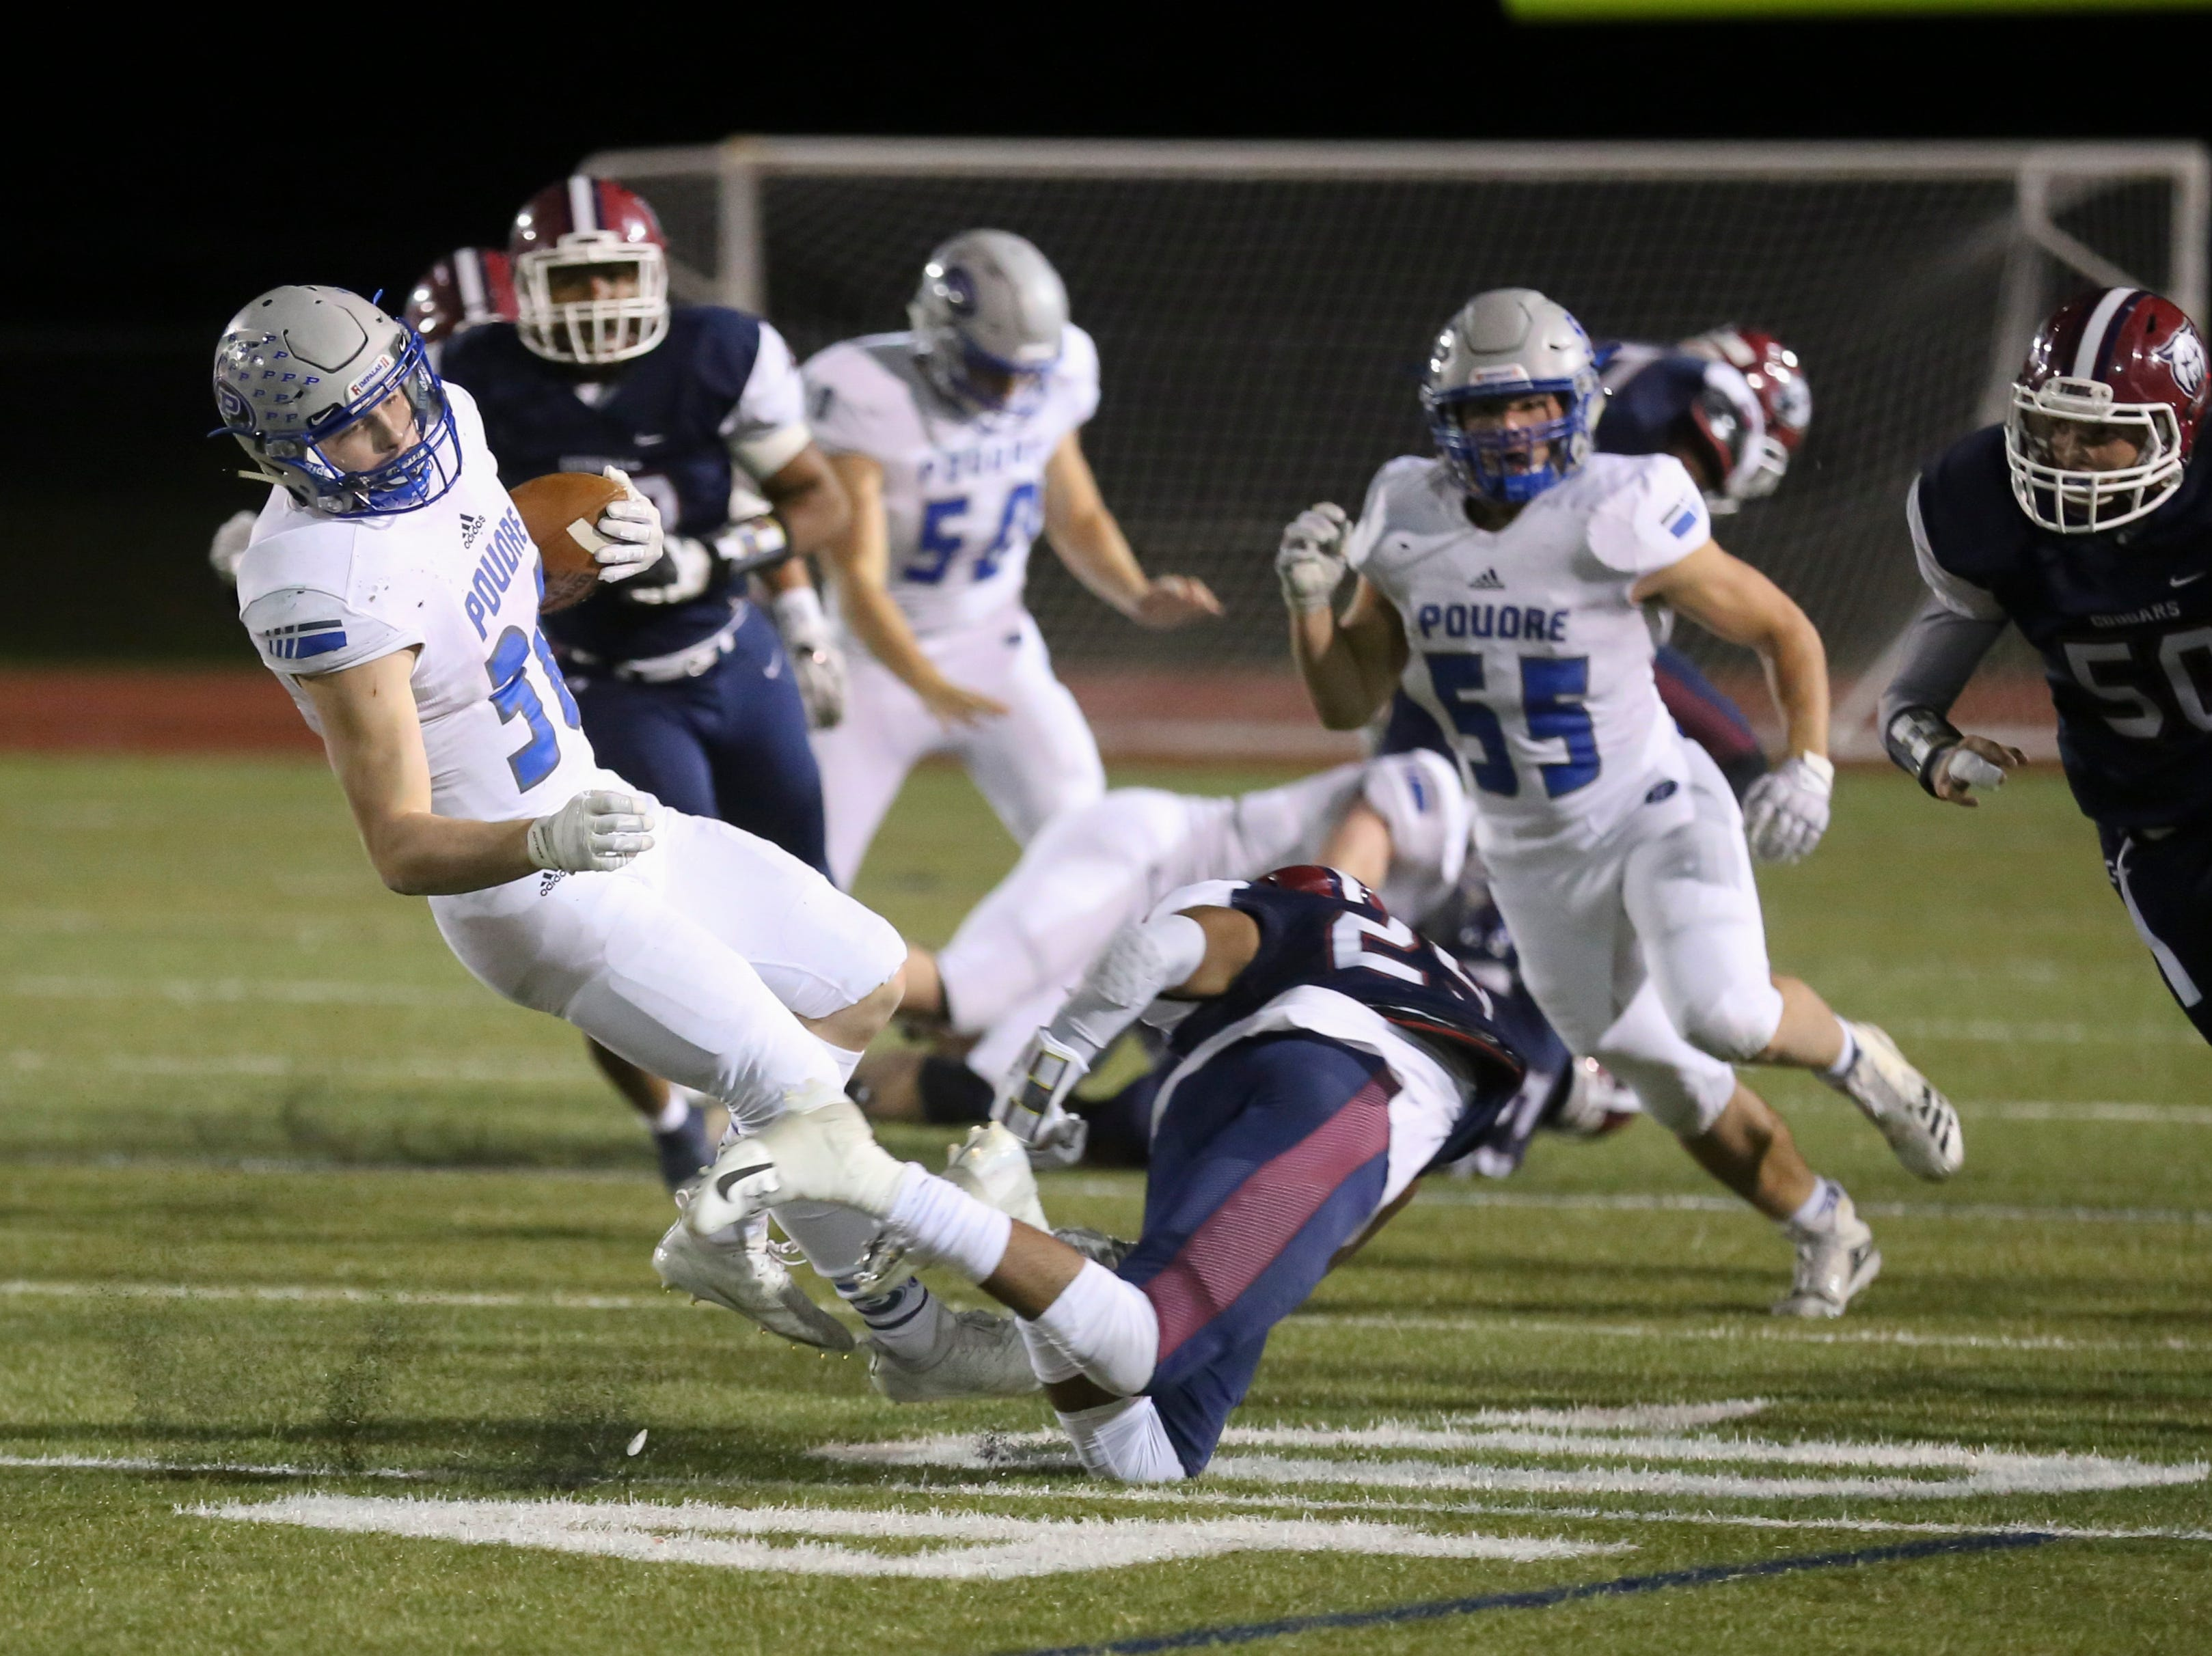 Poudre High School's Tate Satterfield gets tackled by Cherokee Trail High School's Marc-anthony Wingo during a playoff game on Friday evening.